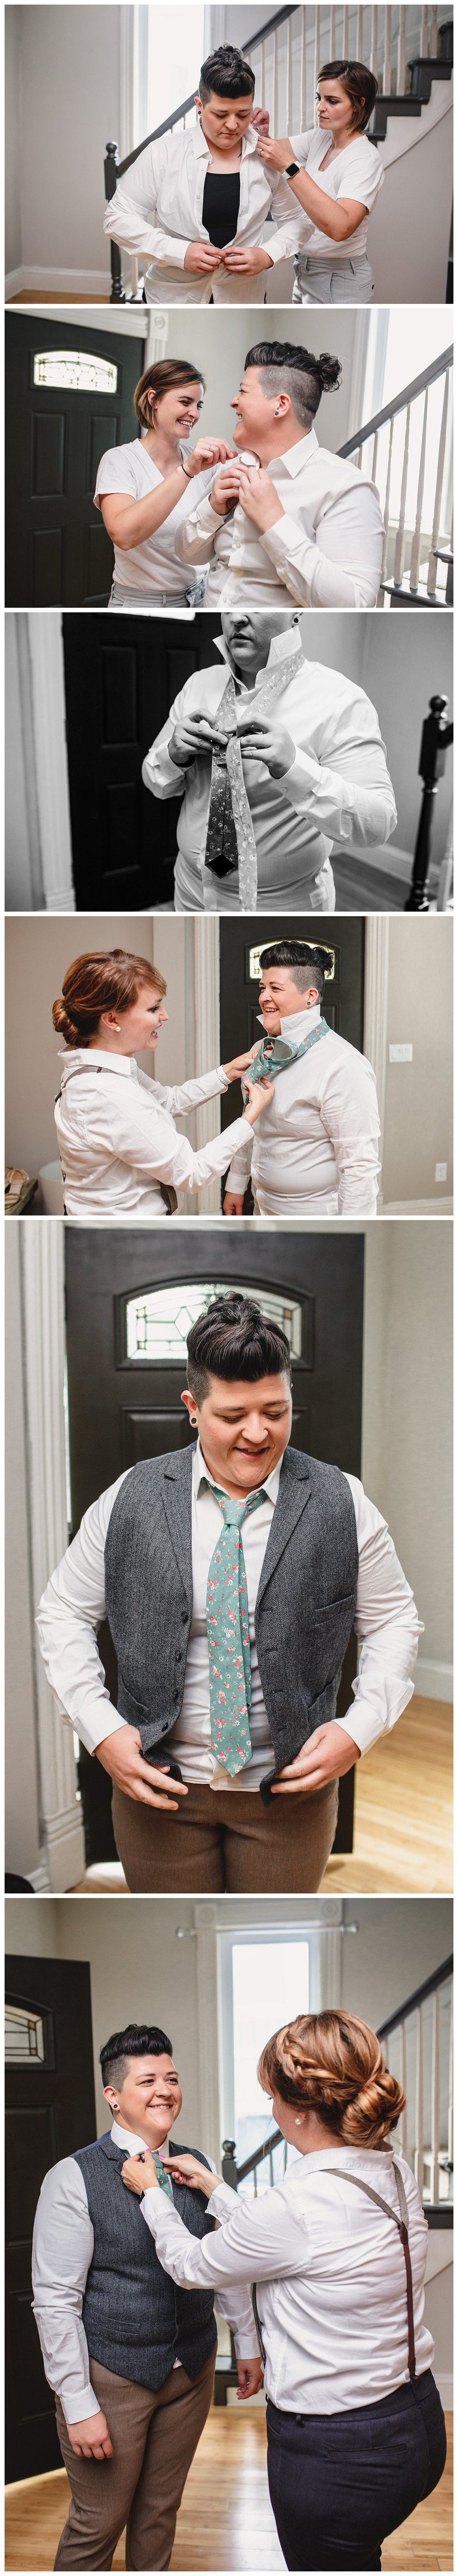 Kelsey_Diane_Photography_The_Vow_Exchange_Kansas_City_LGBT_Friendly_Wedding_Photographer_Kansas_City_Scout_Ica_0700.jpg